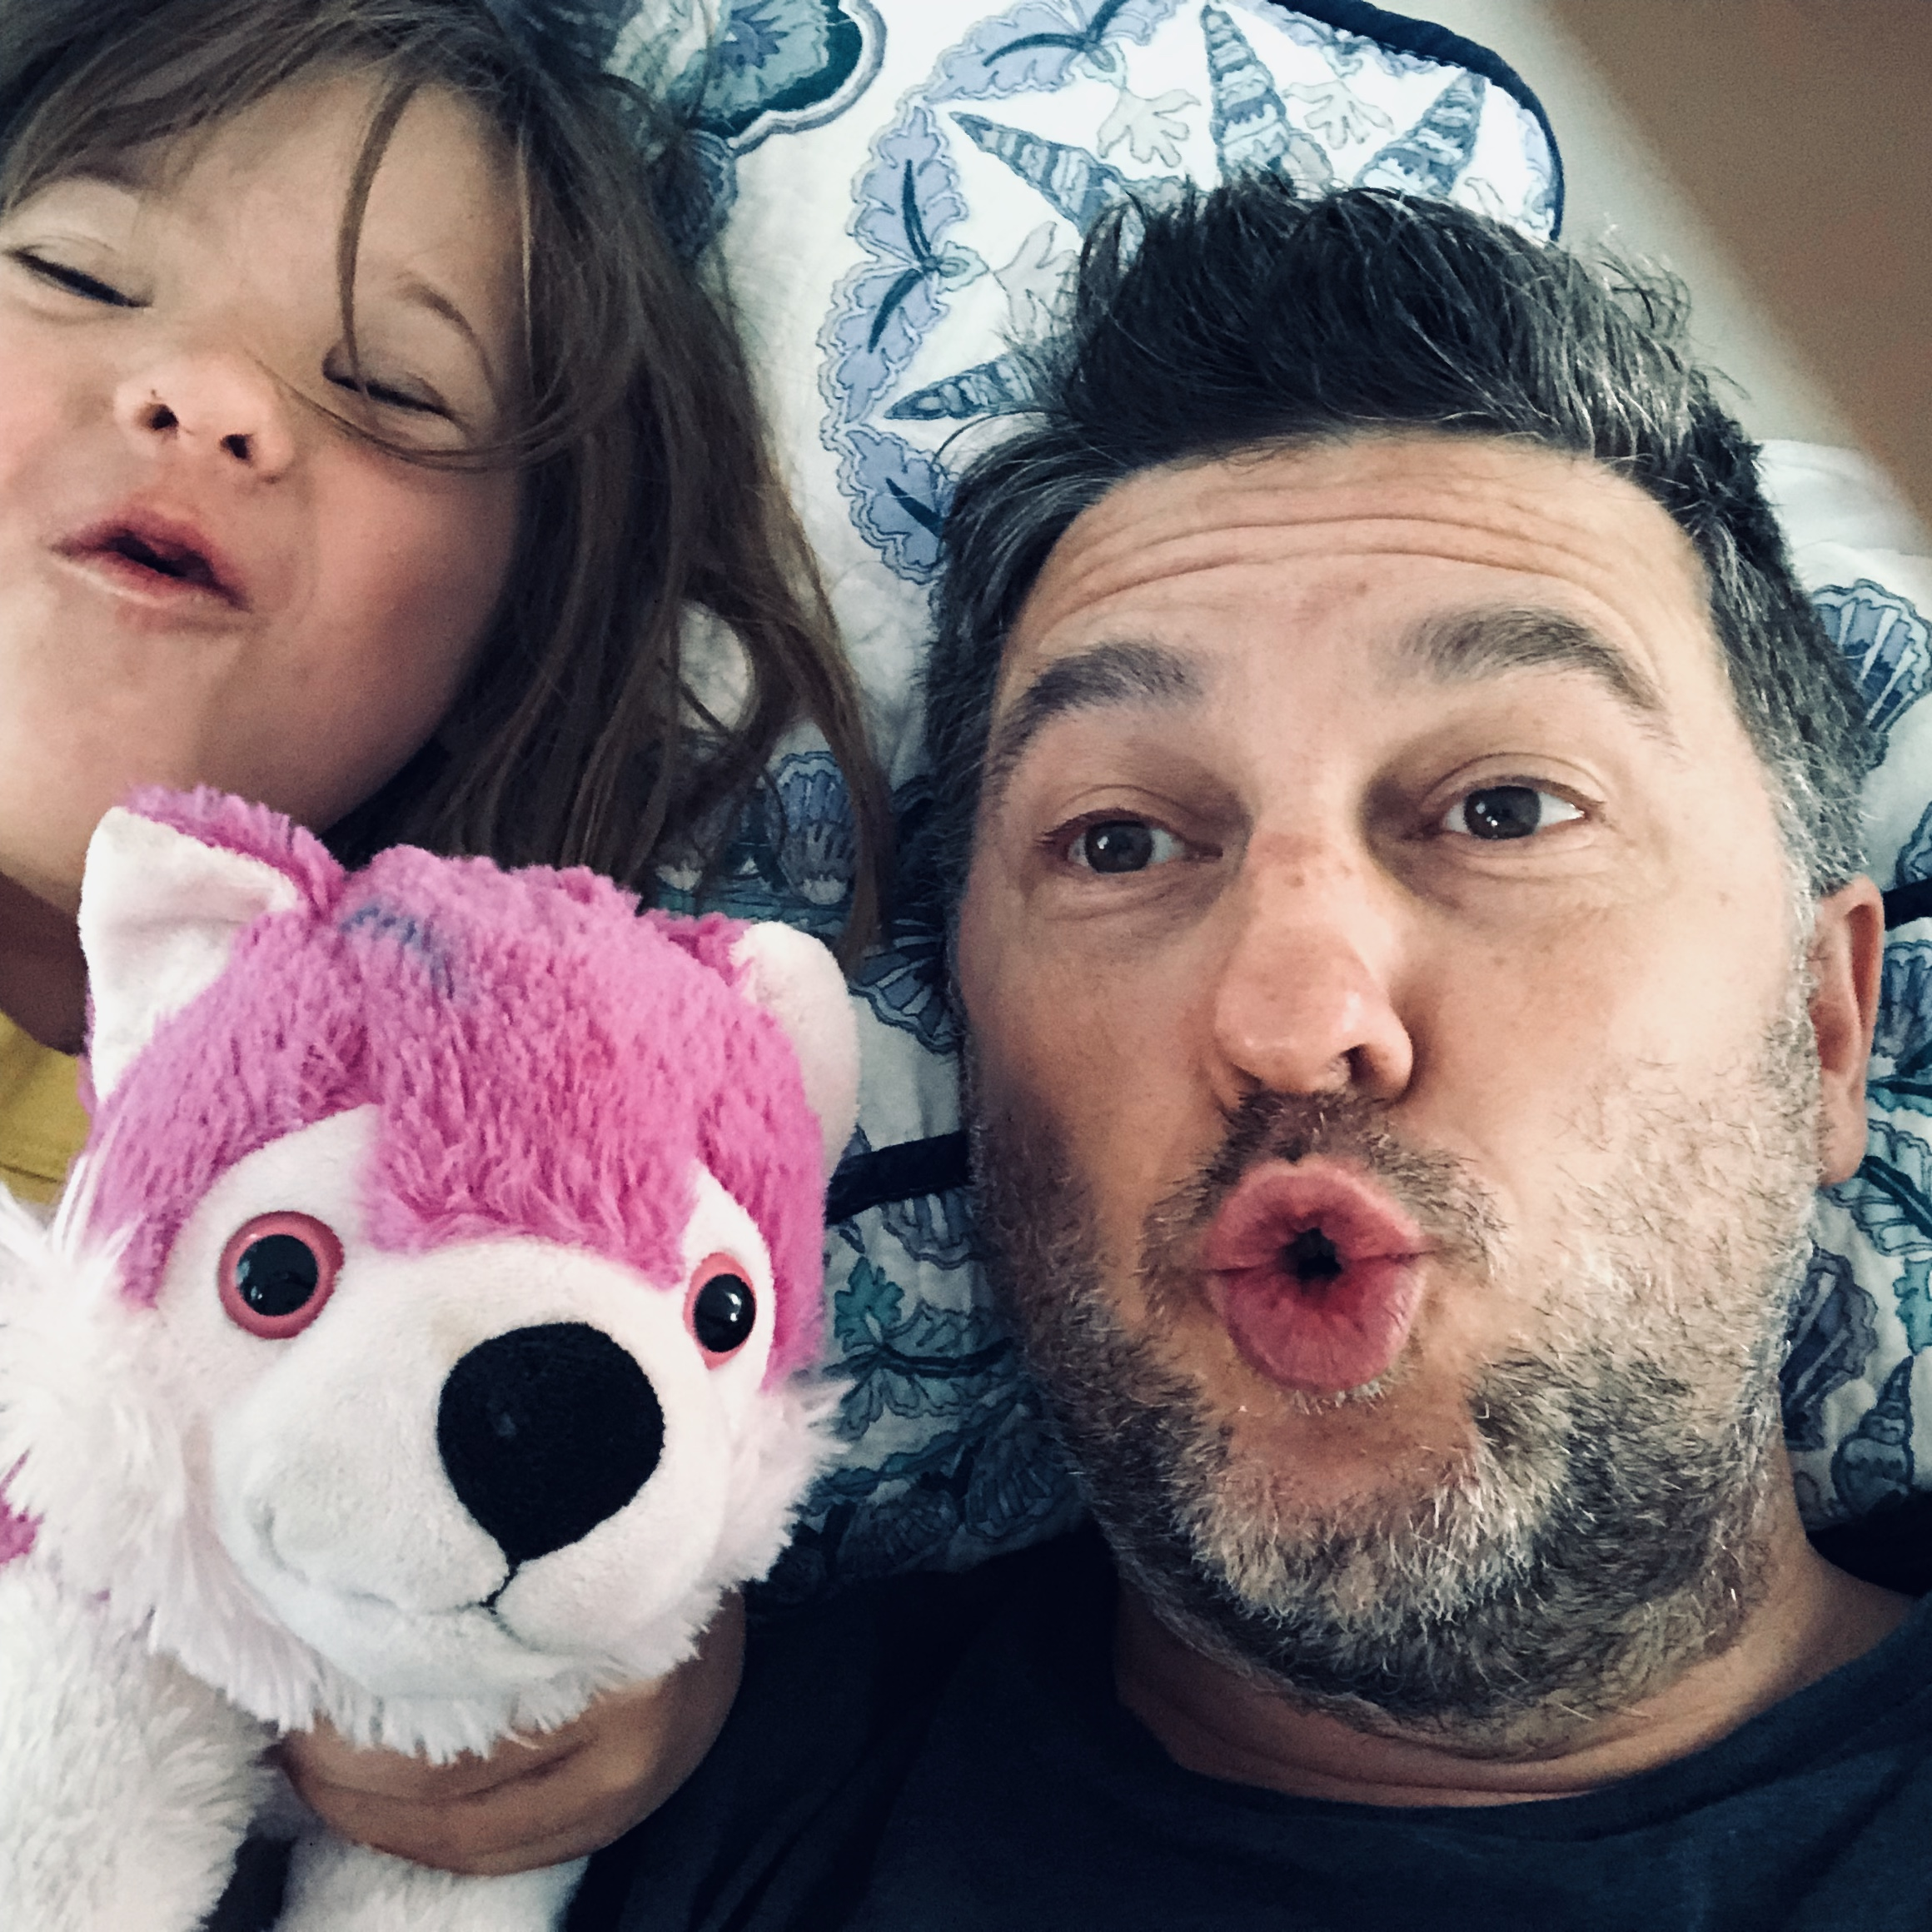 young girl with older man laying down with a white and pink stuffed animal